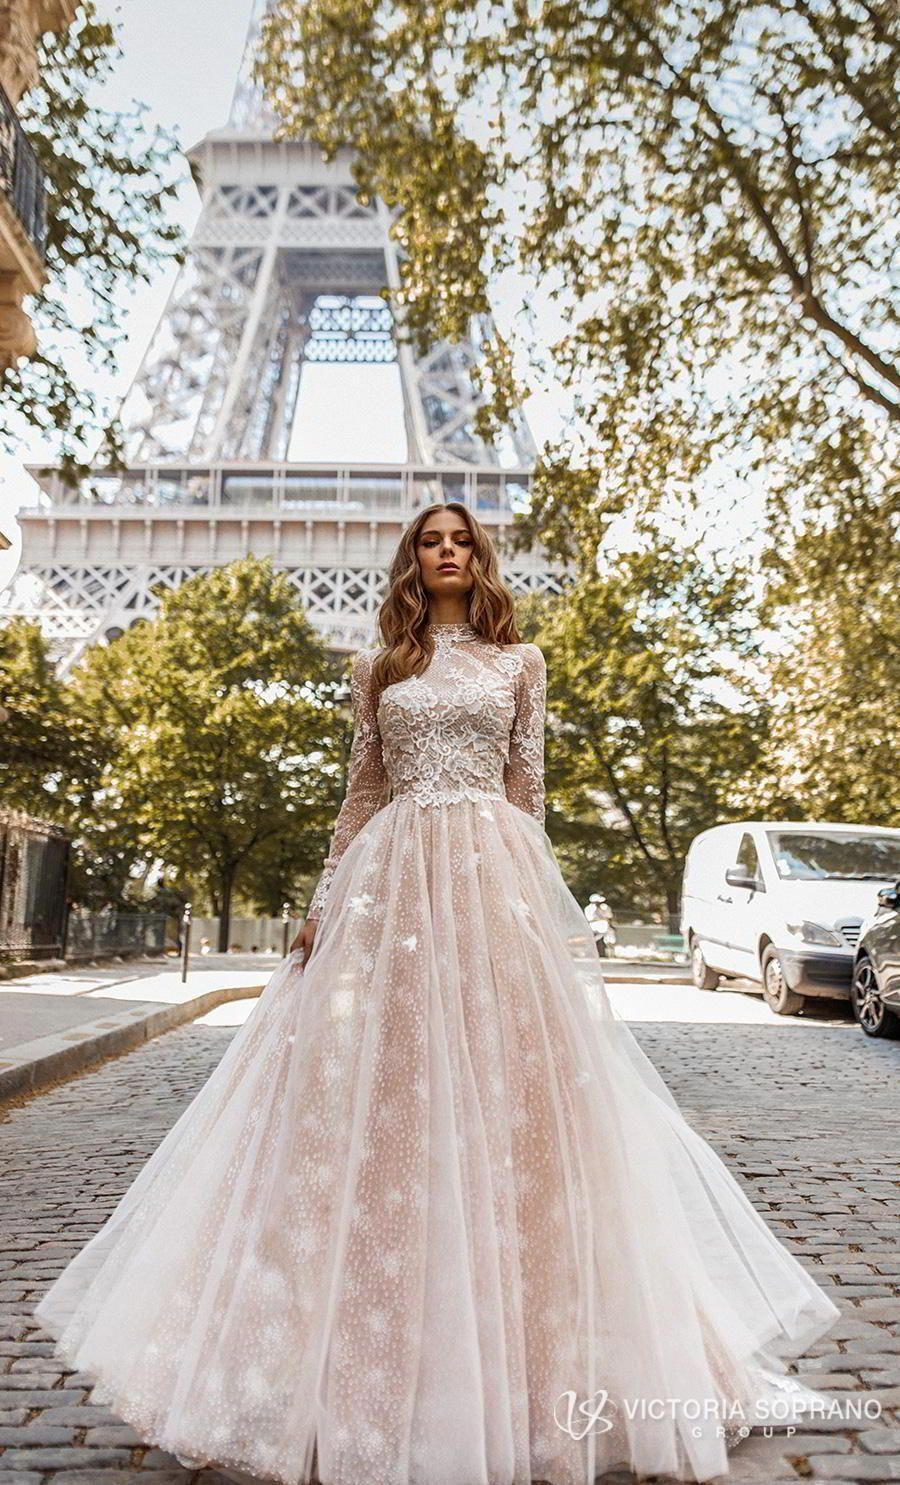 victoria soprano 2019 bridal long sleeves high neck heavily embellished bodice elegant princess a  line wedding dress open low back chapel train (dior) mv -- These Victoria Soprano Wedding Dresses Will Make You Swoon! | Wedding Inspirasi #wedding #weddings #bridal #weddingdress #bride ~ #longsleevedweddingdresses #zivilhochzeitskleider victoria soprano 2019 bridal long sleeves high neck heavily embellished bodice elegant princess a  line wedding dress open low back chapel train (dior) mv -- Thes #zivilhochzeitskleider